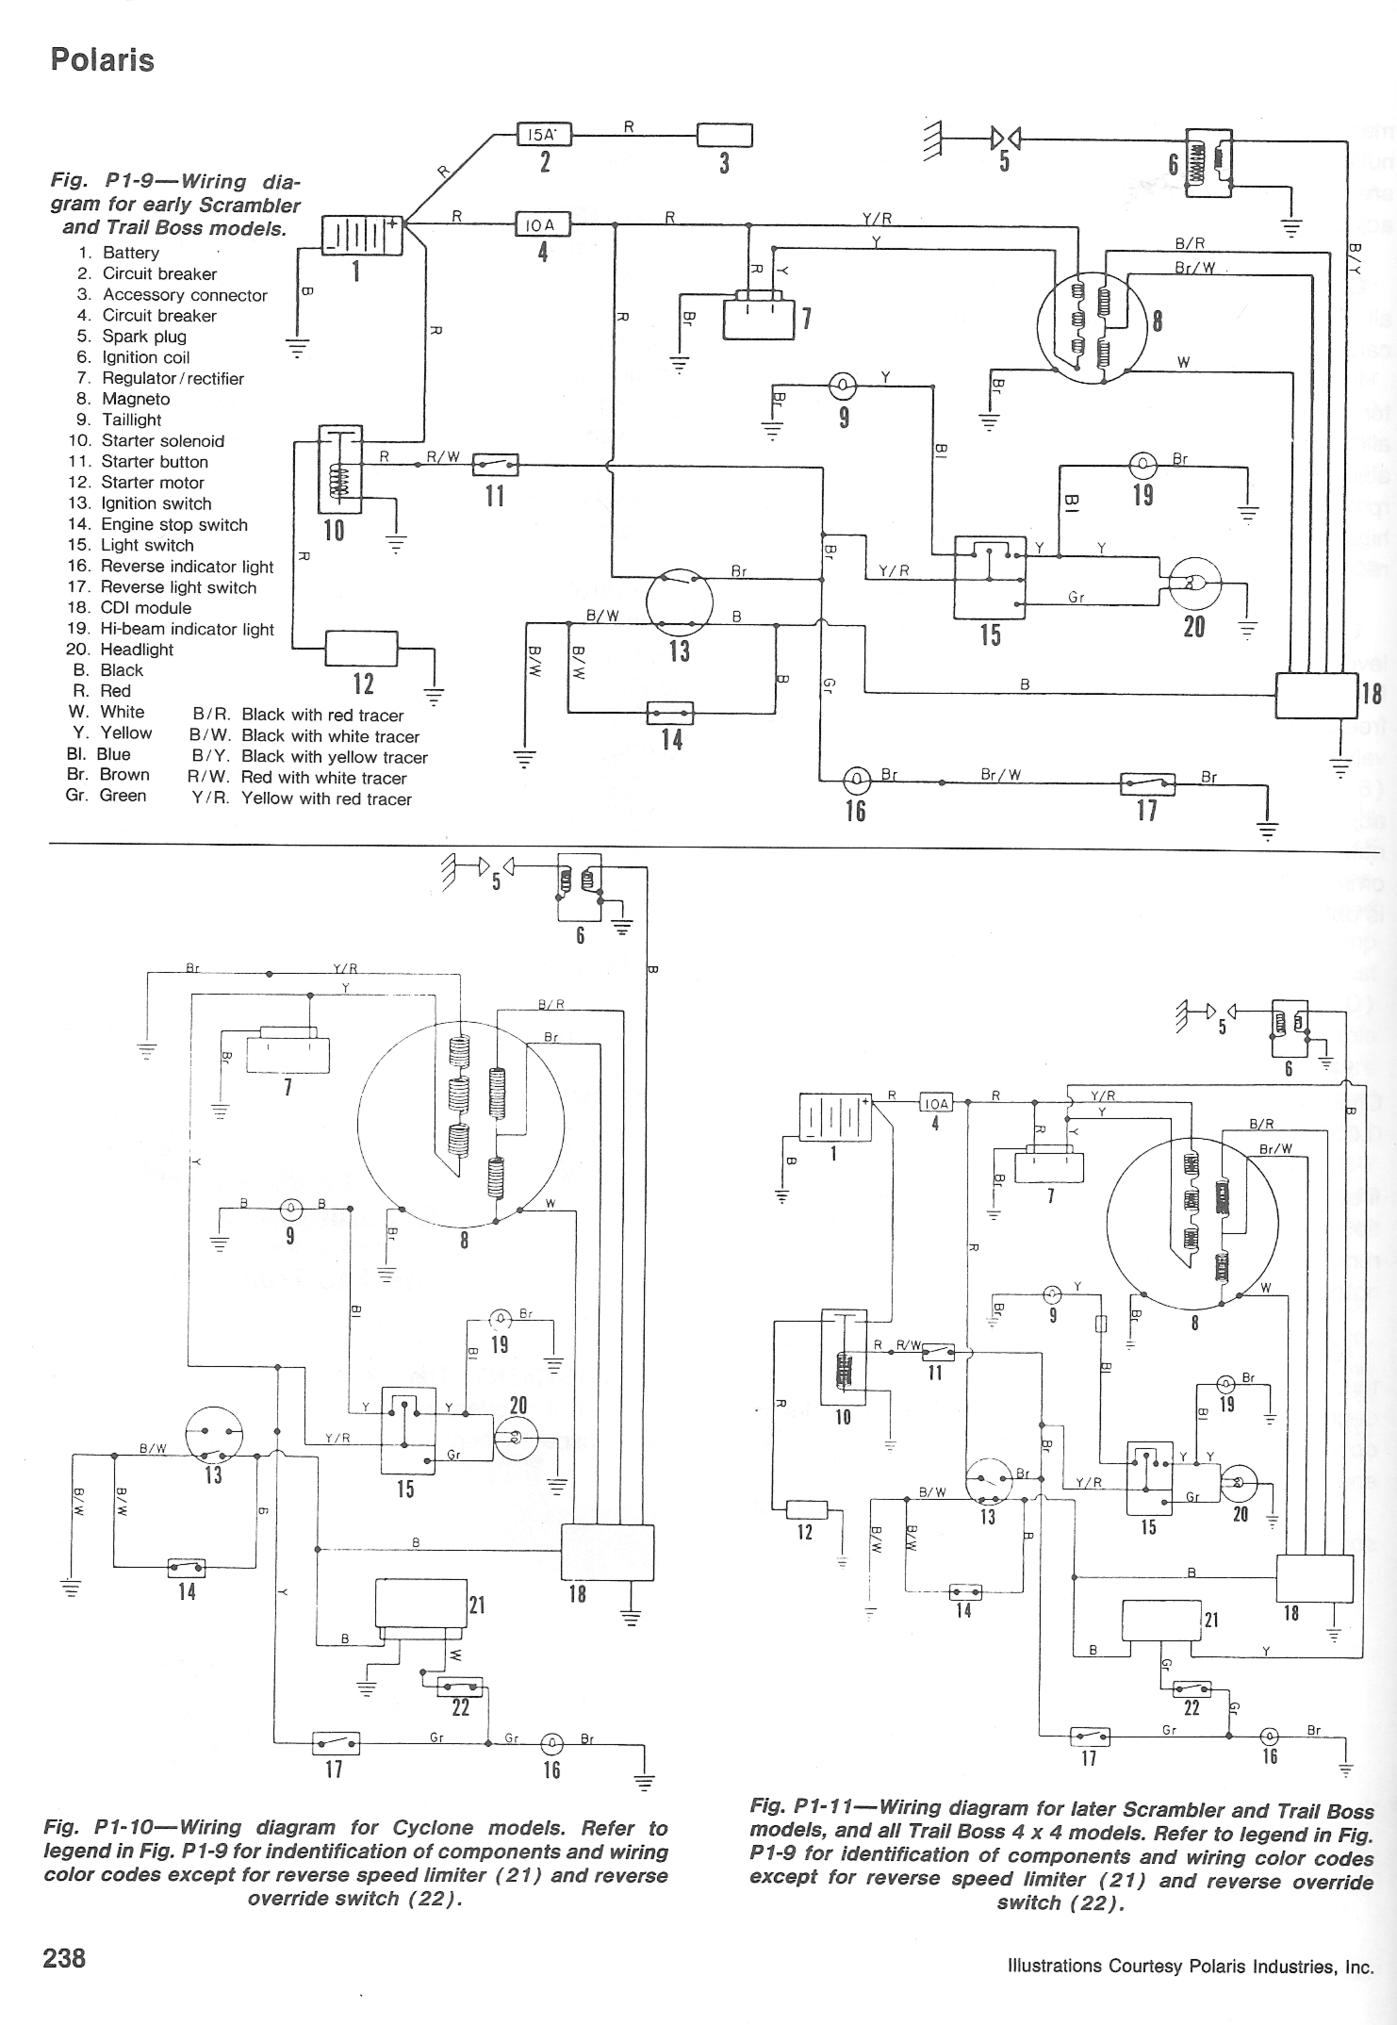 wiring diagram 2000 polaris scrambler 4x4 vz 7413  wiring diagram together with polaris sportsman 90 wiring  wiring diagram together with polaris